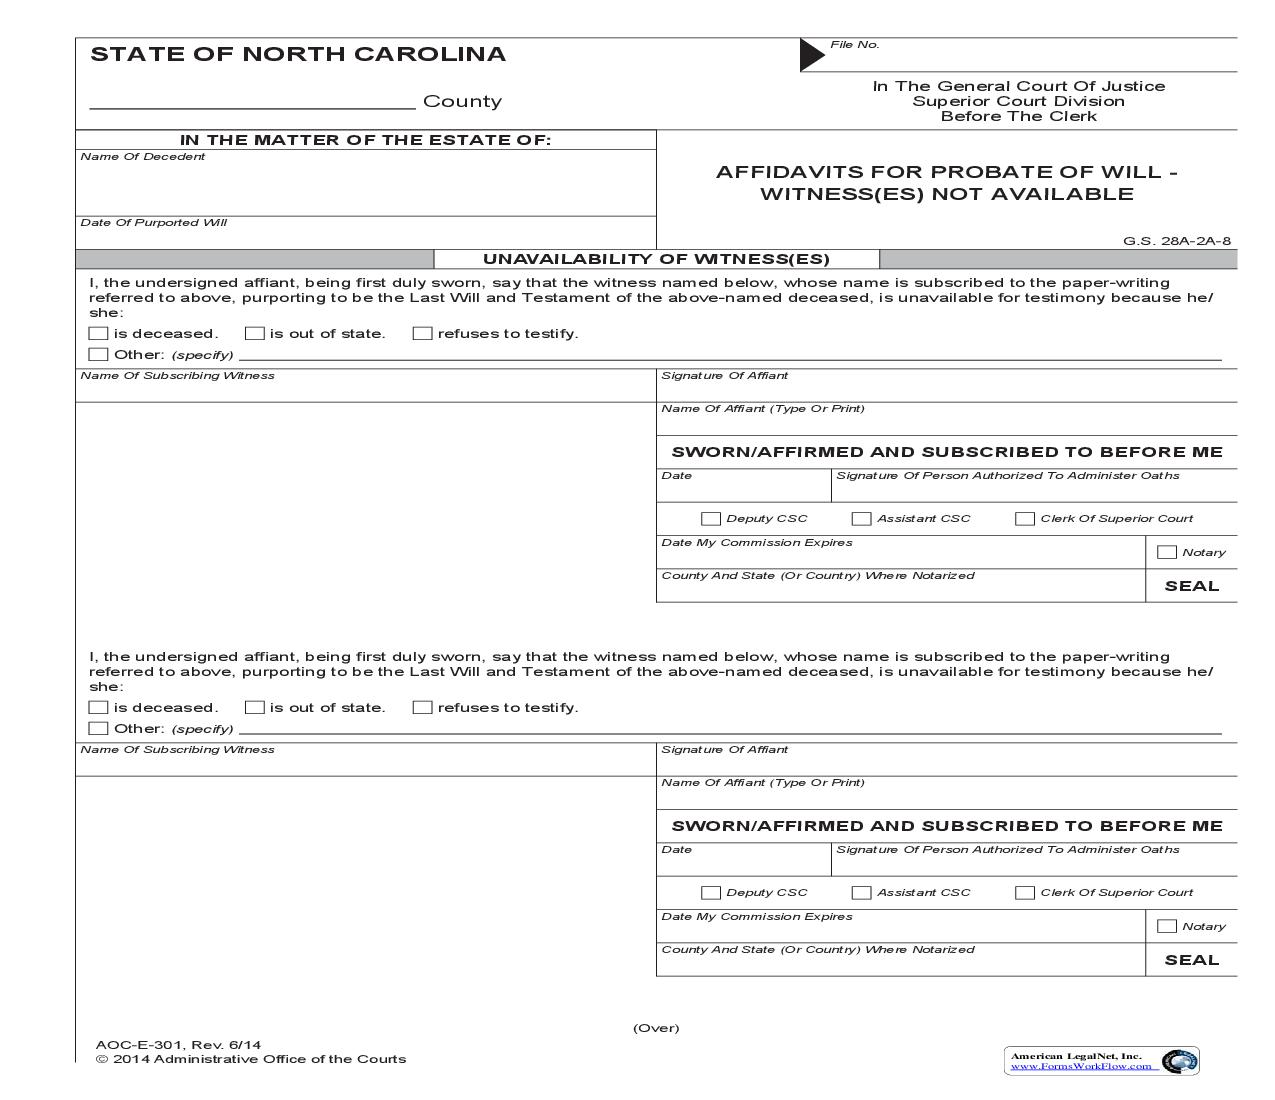 Affidavits For Probate Of Will Witnesses Not Available {E-301} | Pdf Fpdf Doc Docx | North Carolina